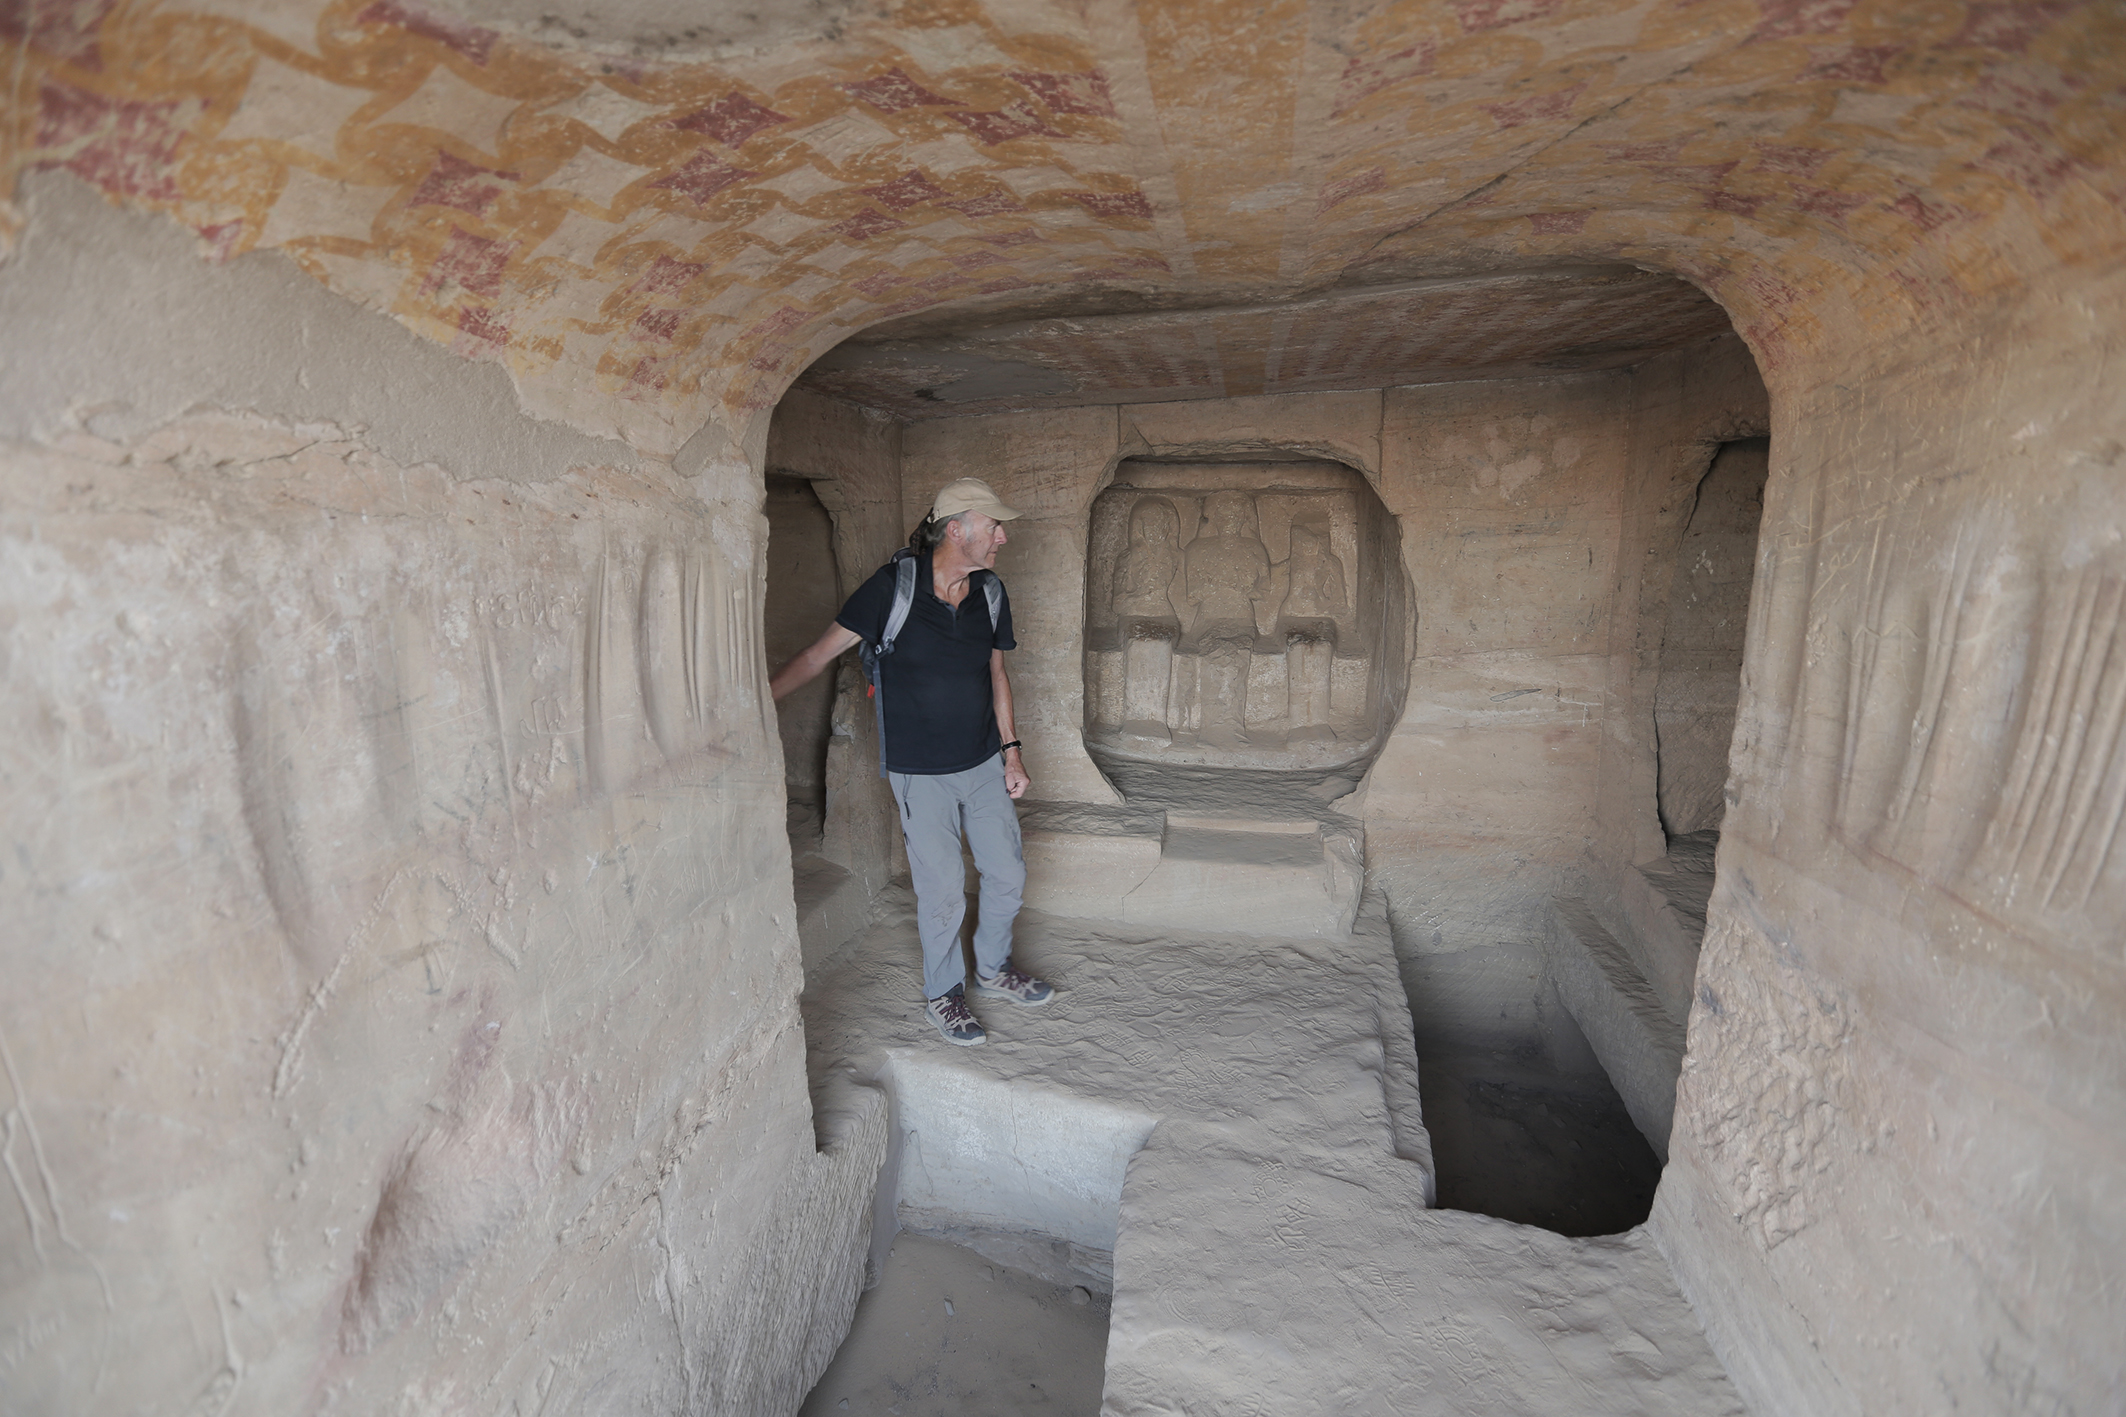 Ran Fiennes exploring a tomb at the historic site of Gebel el Sissela. (National Geographic/Russ Malkin)